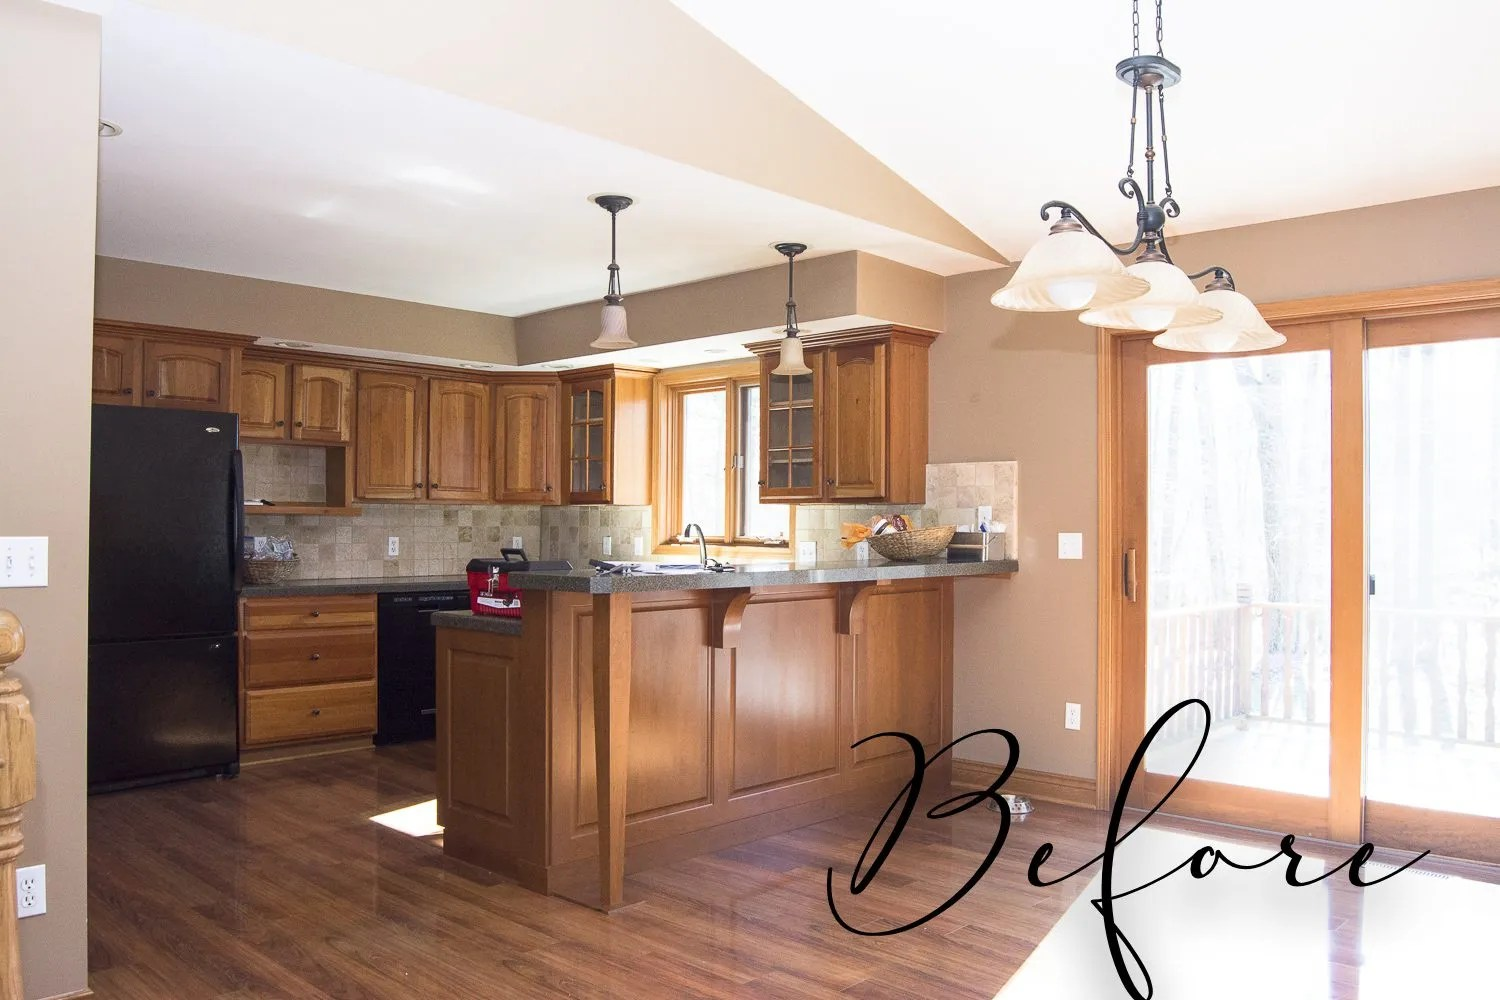 paint your kitchen cabinets in 7 days | prep steps 1-3 | grace in my